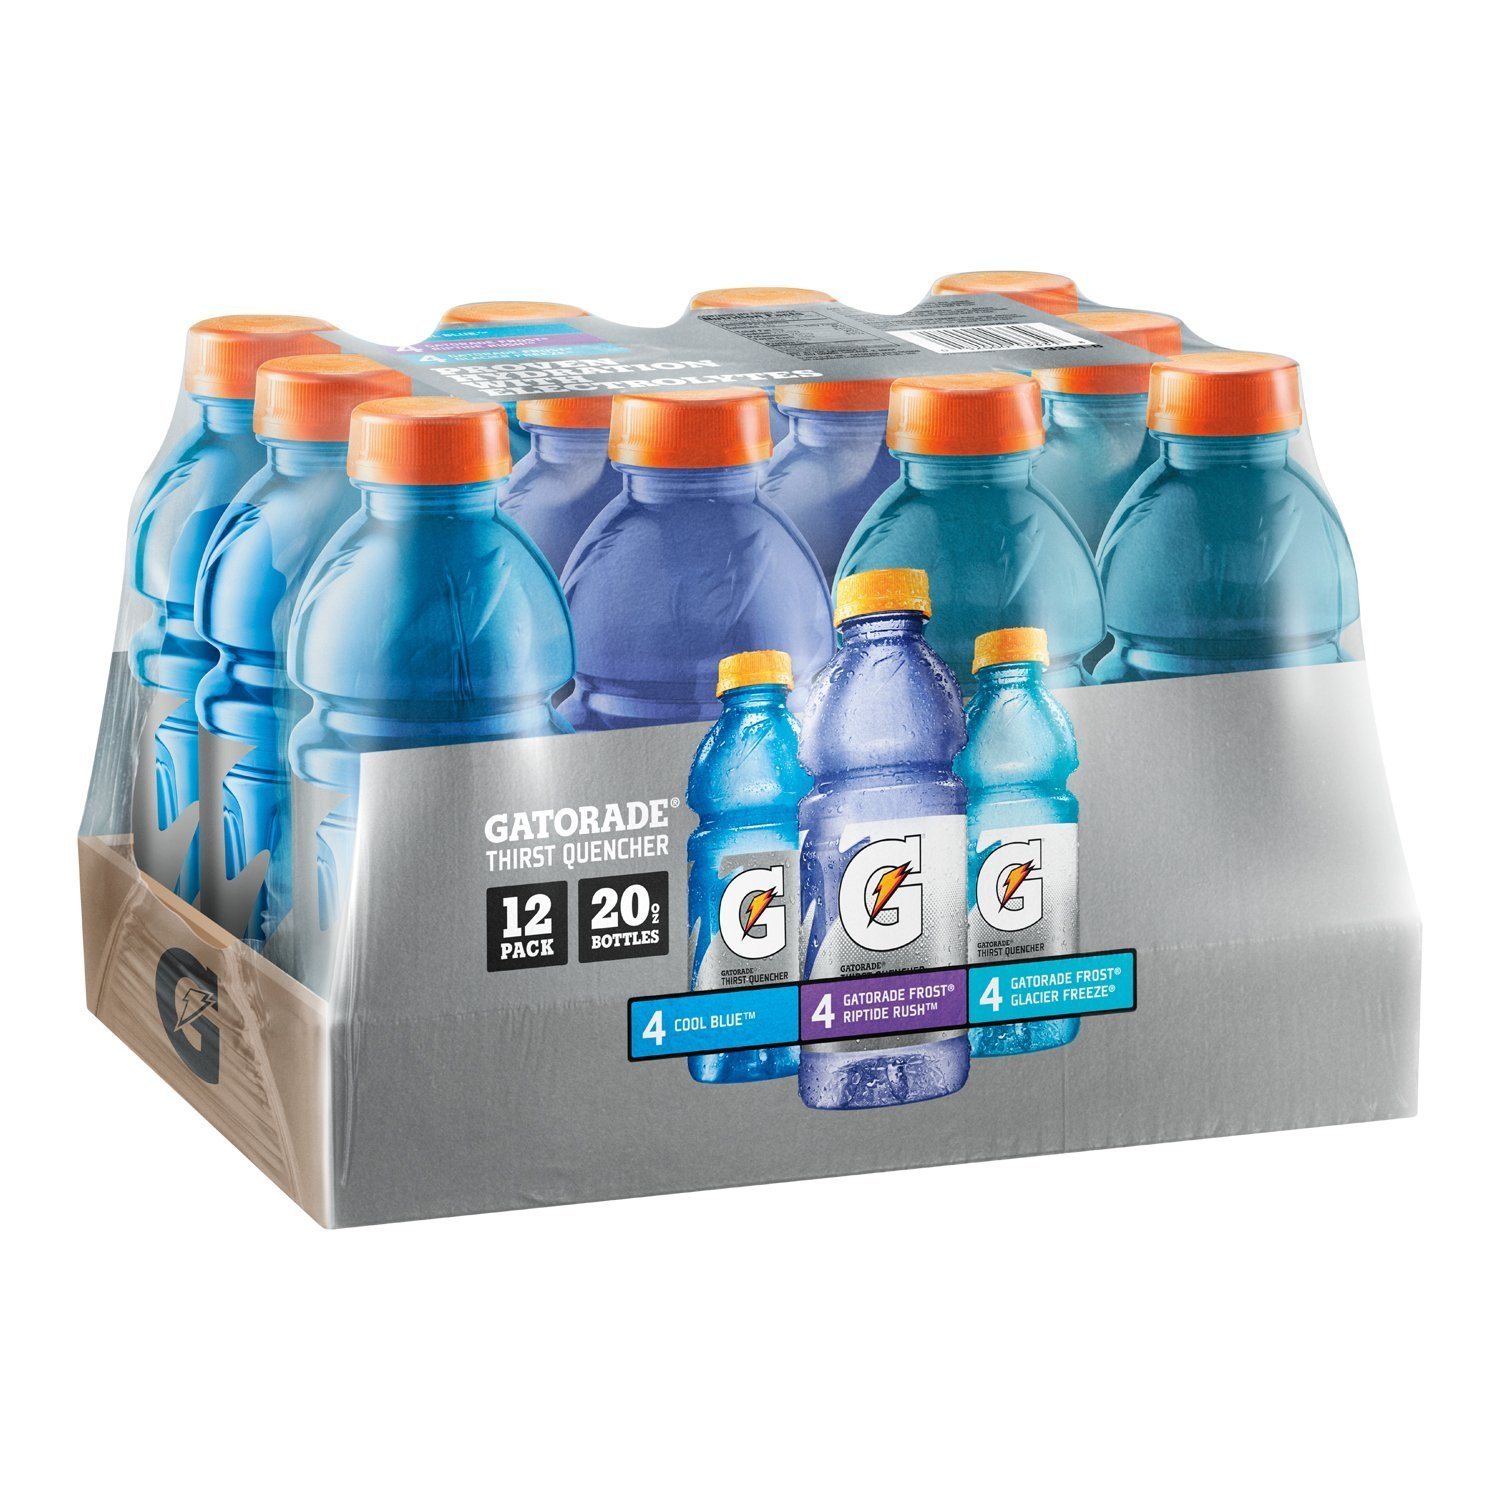 Gatorade Frost Thirst Quencher Variety Pack, 20 Ounce Bottles (Pack of 12)